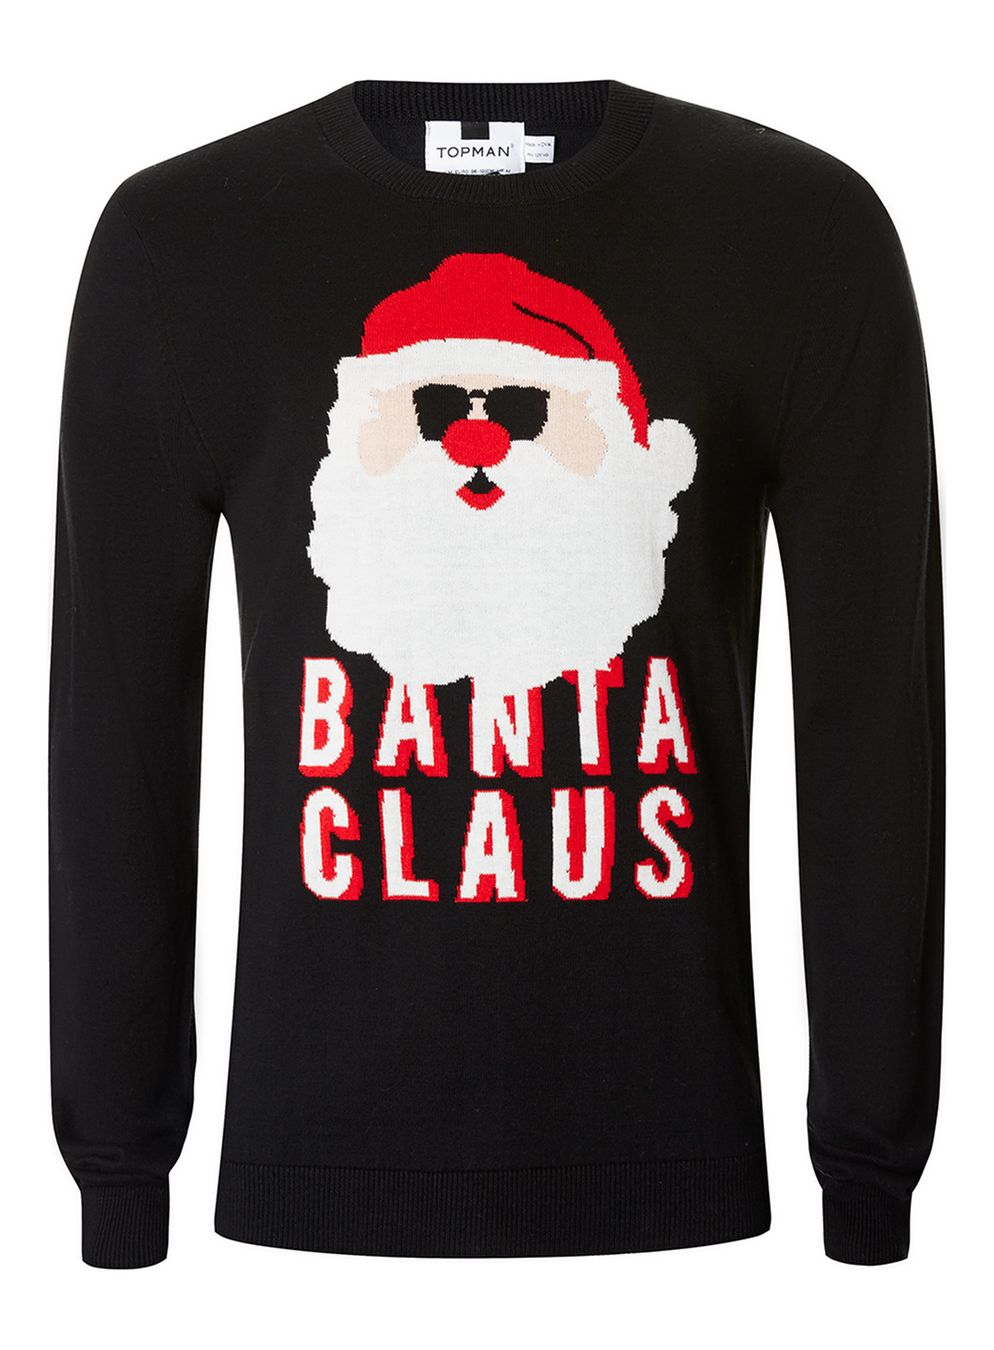 Banta Claus jumper